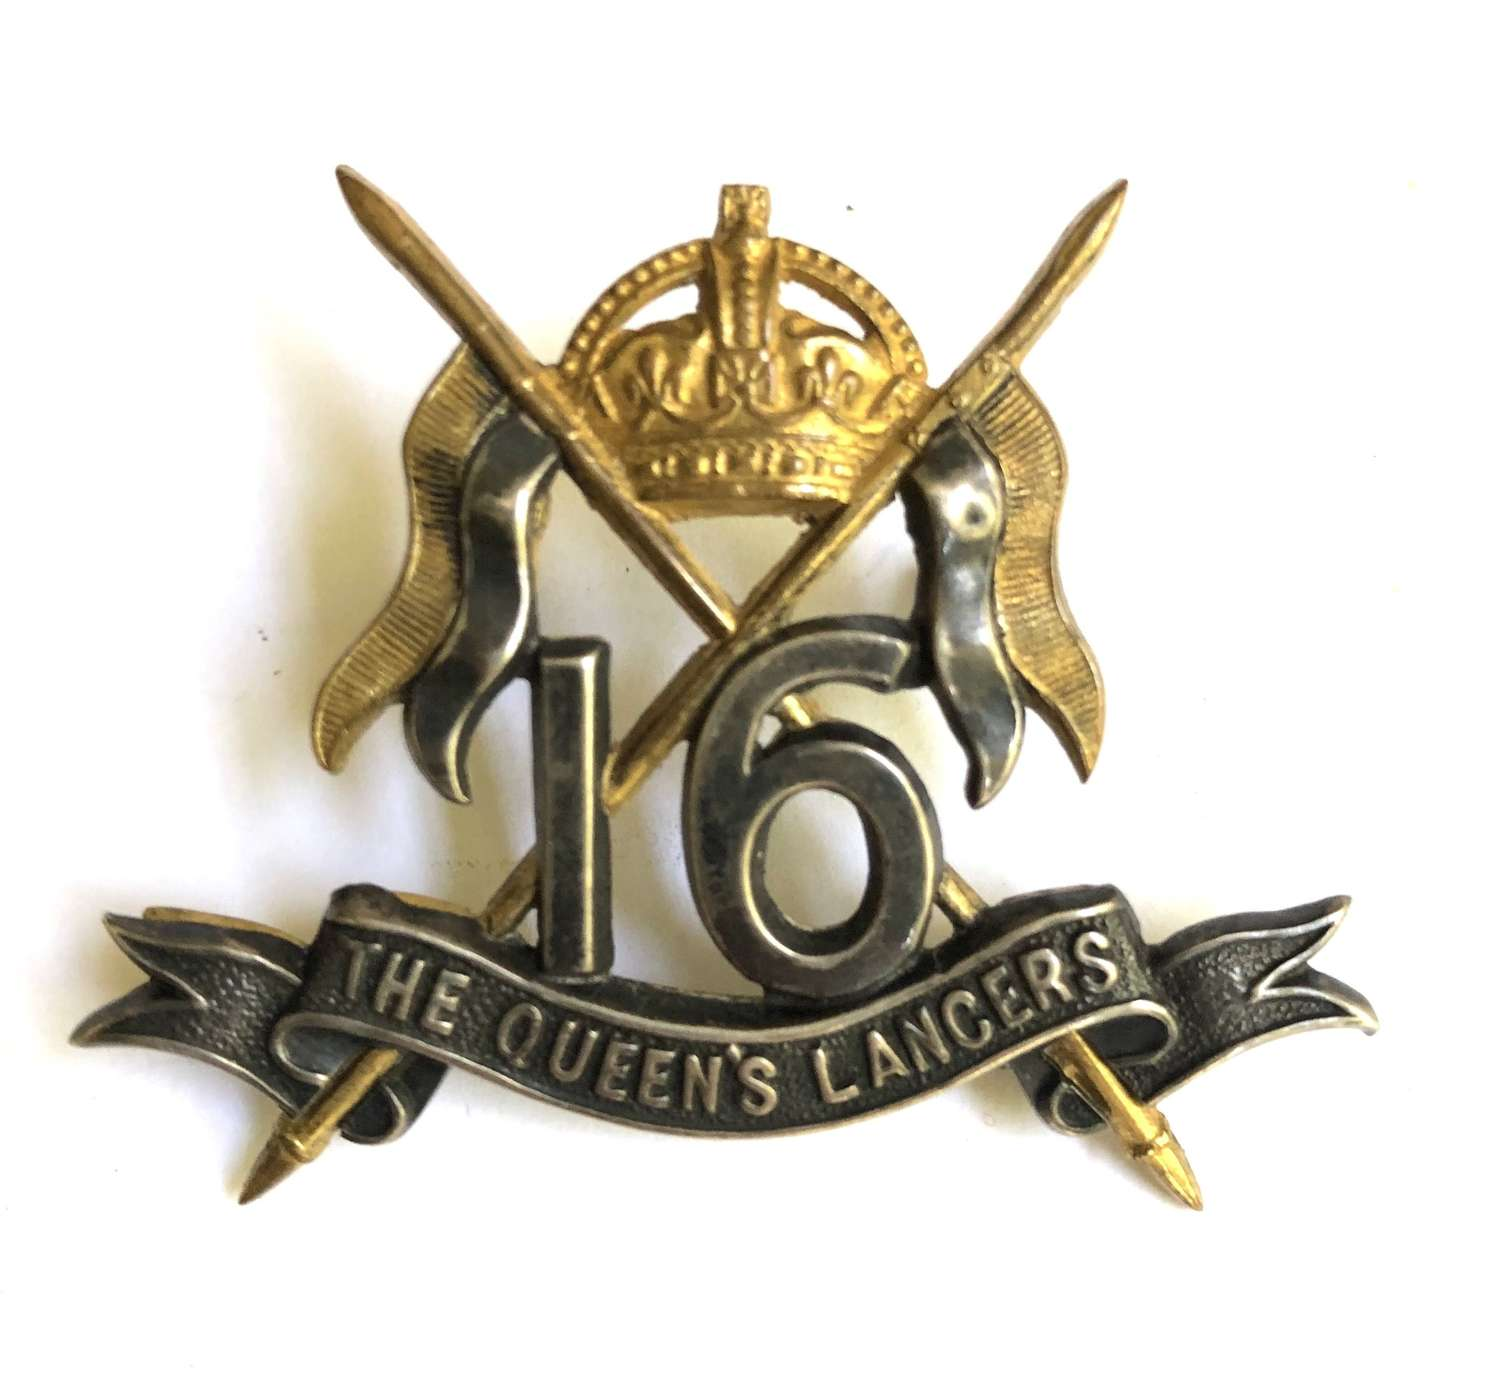 16th The Queen's Lancers Officer's silver and gilt cap badge